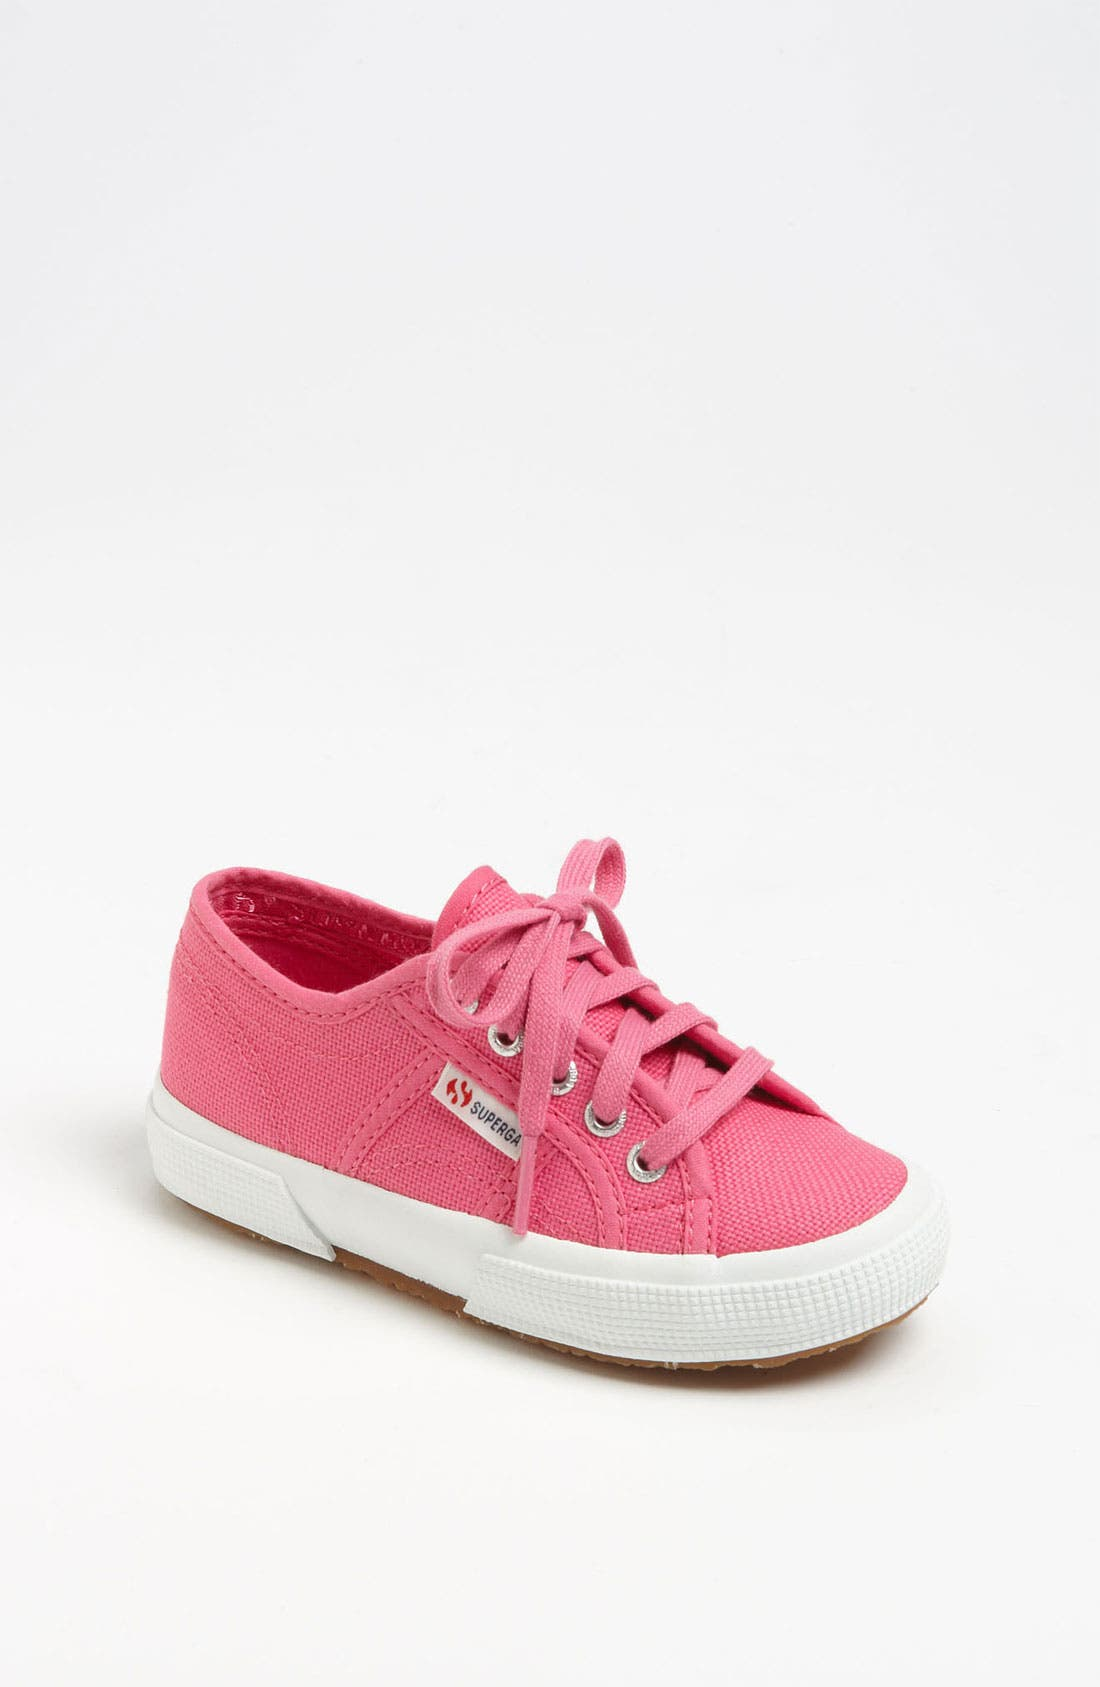 Main Image - Superga 'Junior Classic' Sneaker (Walker, Toddler & Little Kid)